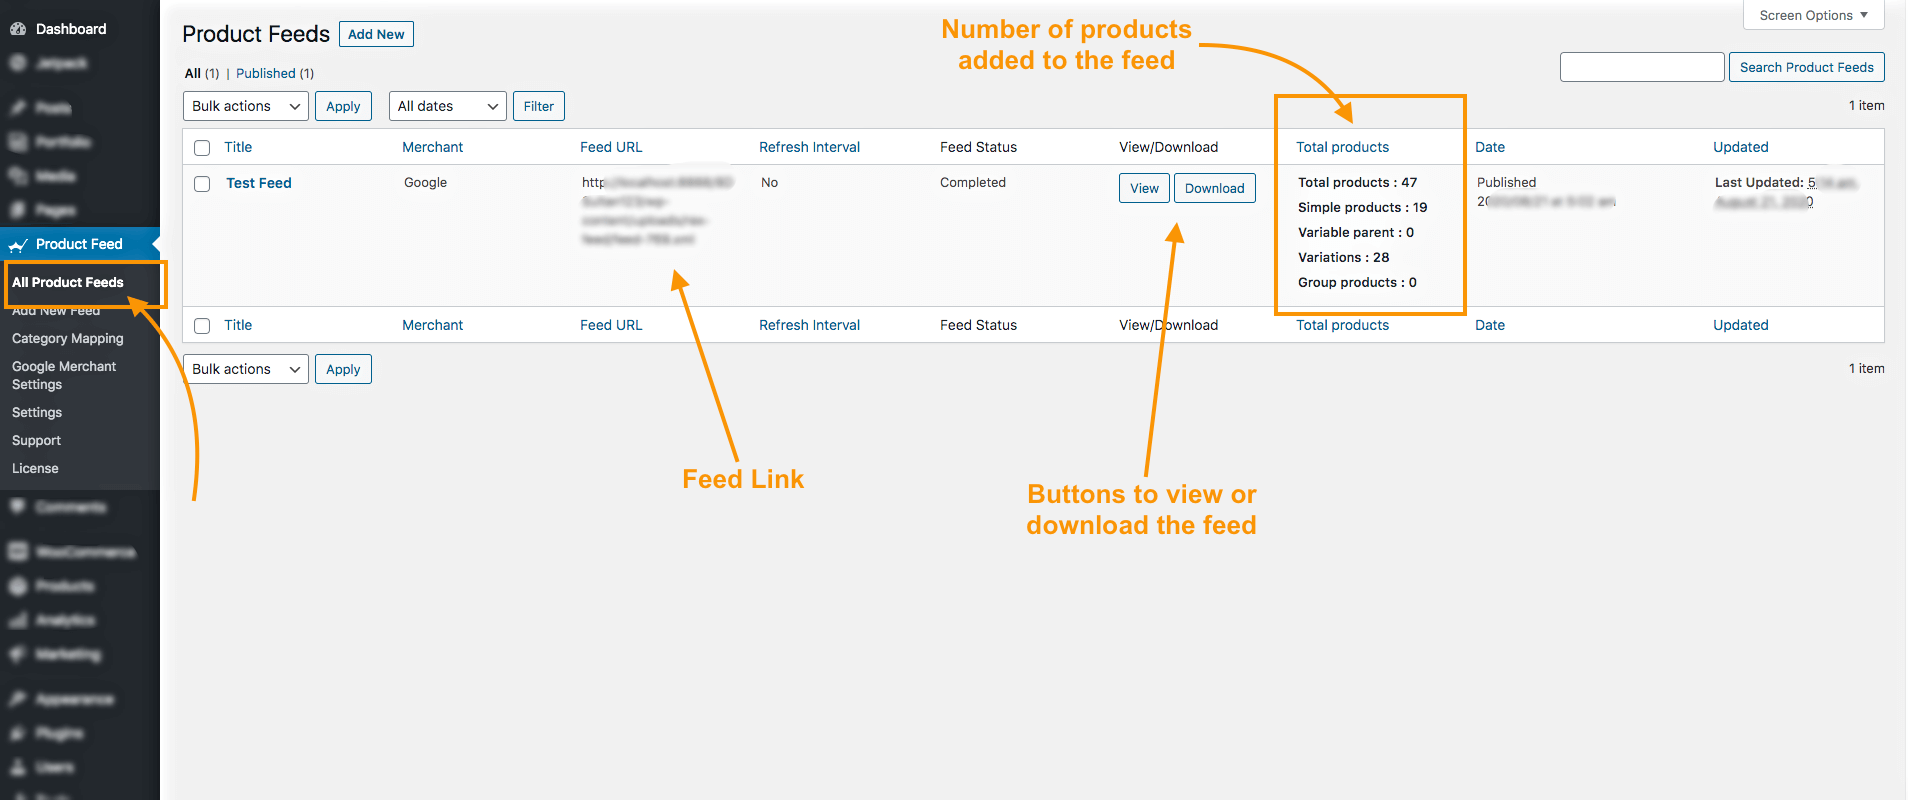 All Product Feeds